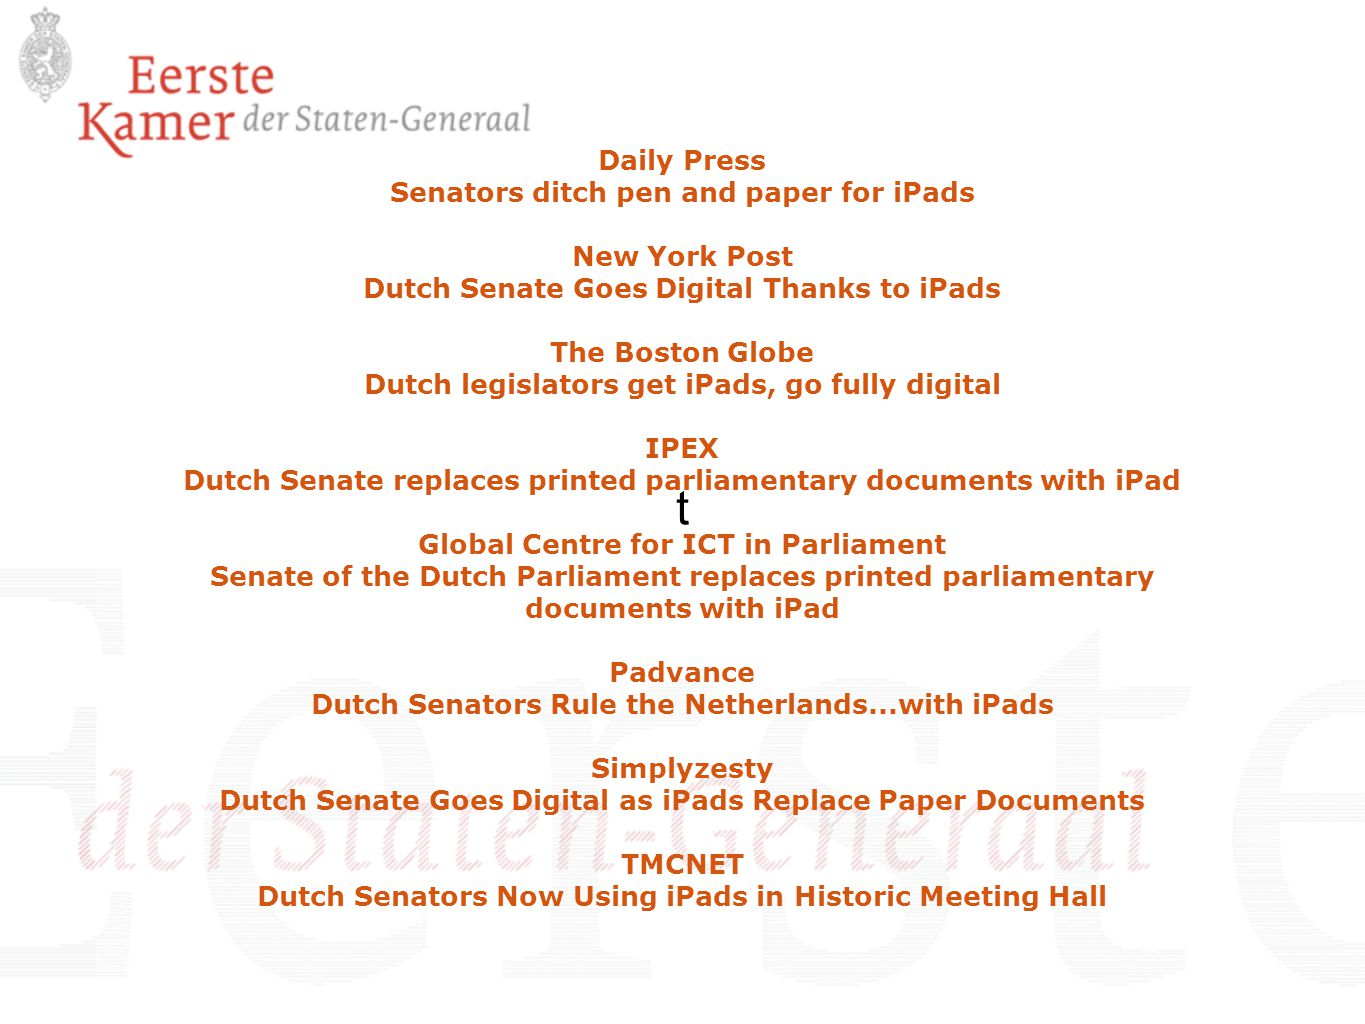 t Daily Press Senators ditch pen and paper for iPads New York Post Dutch Senate Goes Digital Thanks to iPads The Boston Globe Dutch legislators get iPads, go fully digital IPEX Dutch Senate replaces printed parliamentary documents with iPad Global Centre for ICT in Parliament Senate of the Dutch Parliament replaces printed parliamentary documents with iPad Padvance Dutch Senators Rule the Netherlands...with iPads Simplyzesty Dutch Senate Goes Digital as iPads Replace Paper Documents TMCNET Dutch Senators Now Using iPads in Historic Meeting Hall